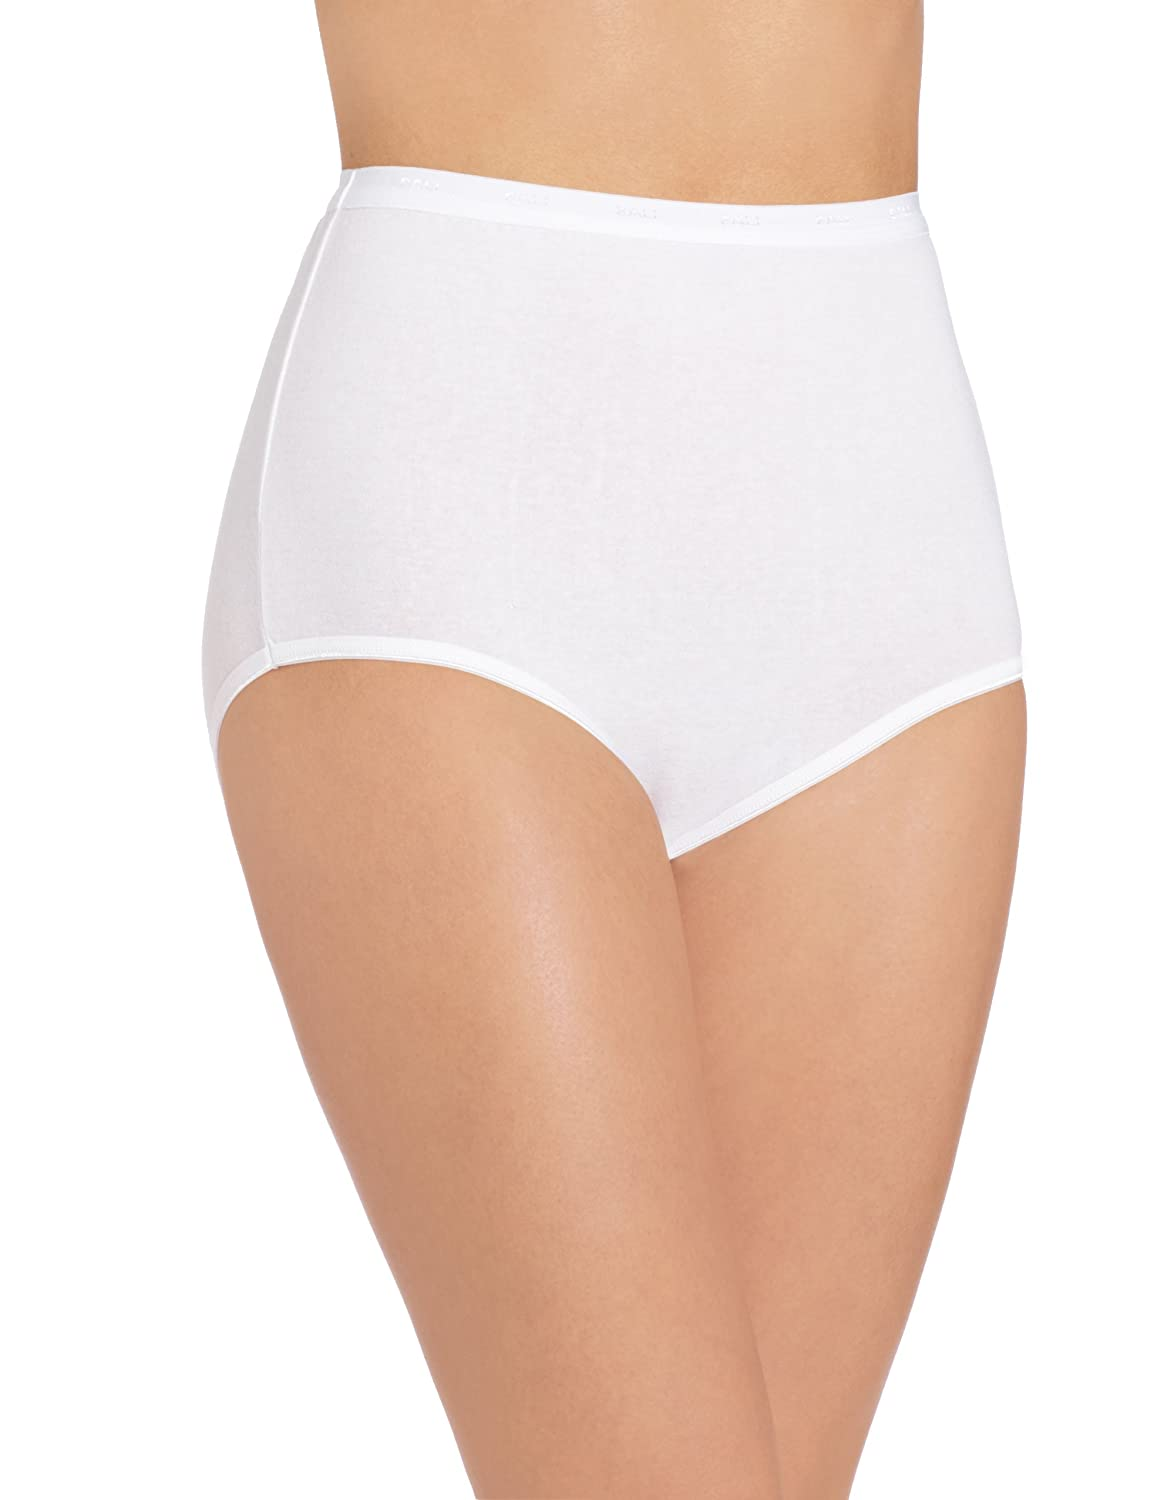 Bali Women's Stretch Brief Panty 2324